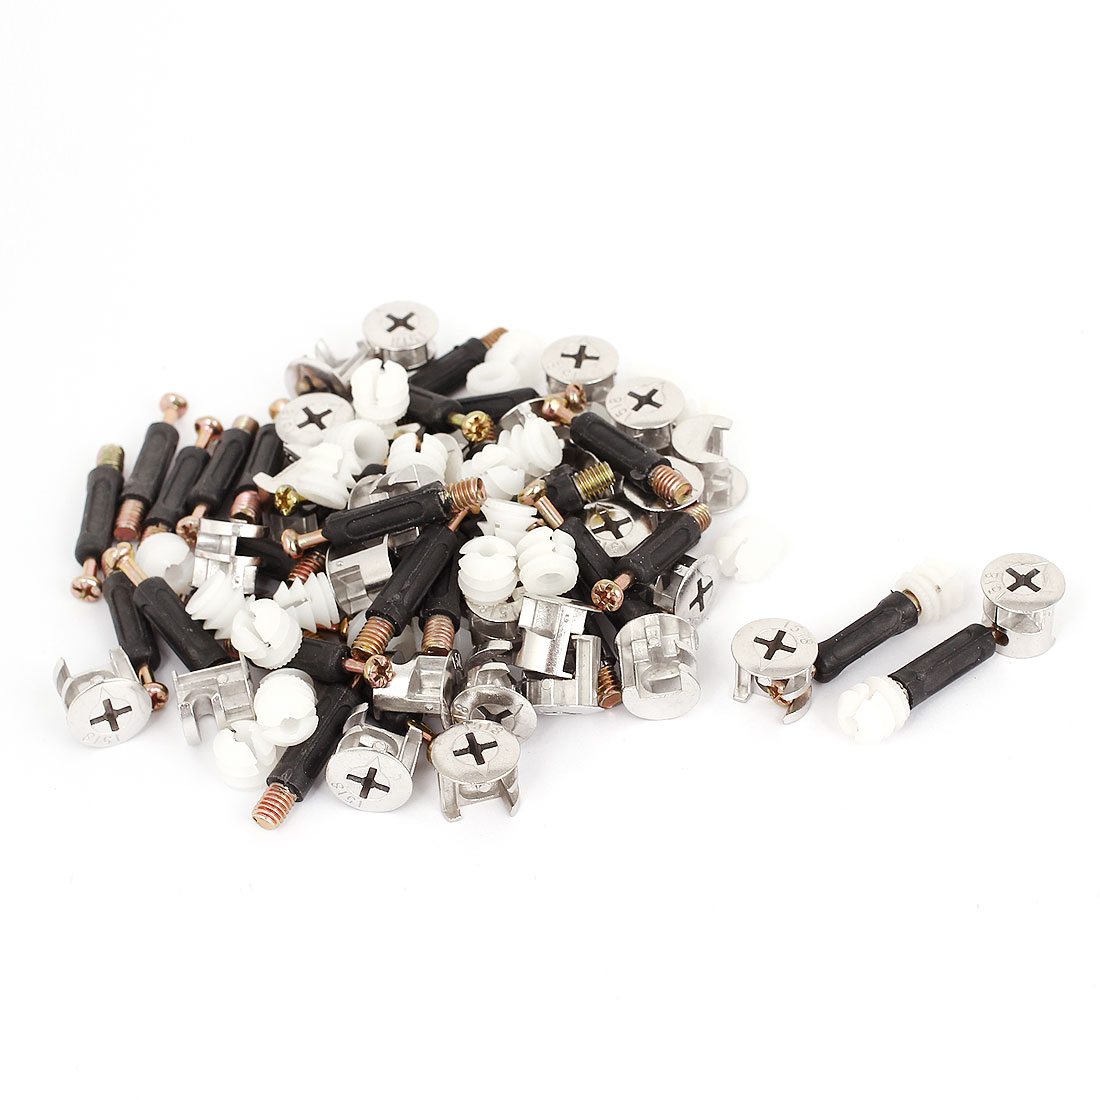 Furniture Connector 15mm Dia Cam Fittings Pre-inserted Nuts Dowels 30 Sets